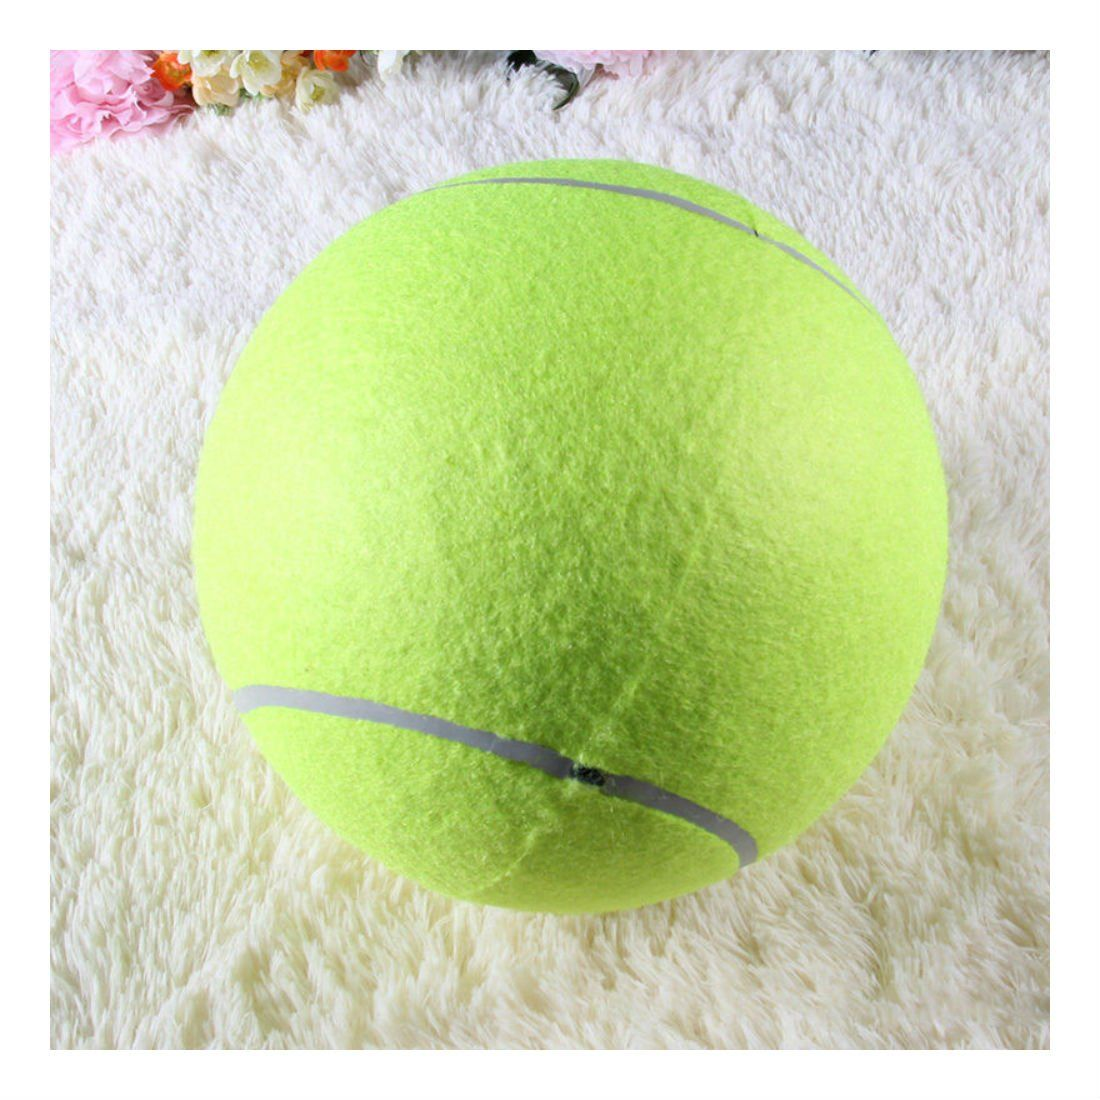 Now Available Big Giant Pet Dog Puppy Tennis Ball Thrower Chucker Launcher Play Toy And Pet Supplies Collectibles Dog Balls Tennis Ball Dog Toys Tennis